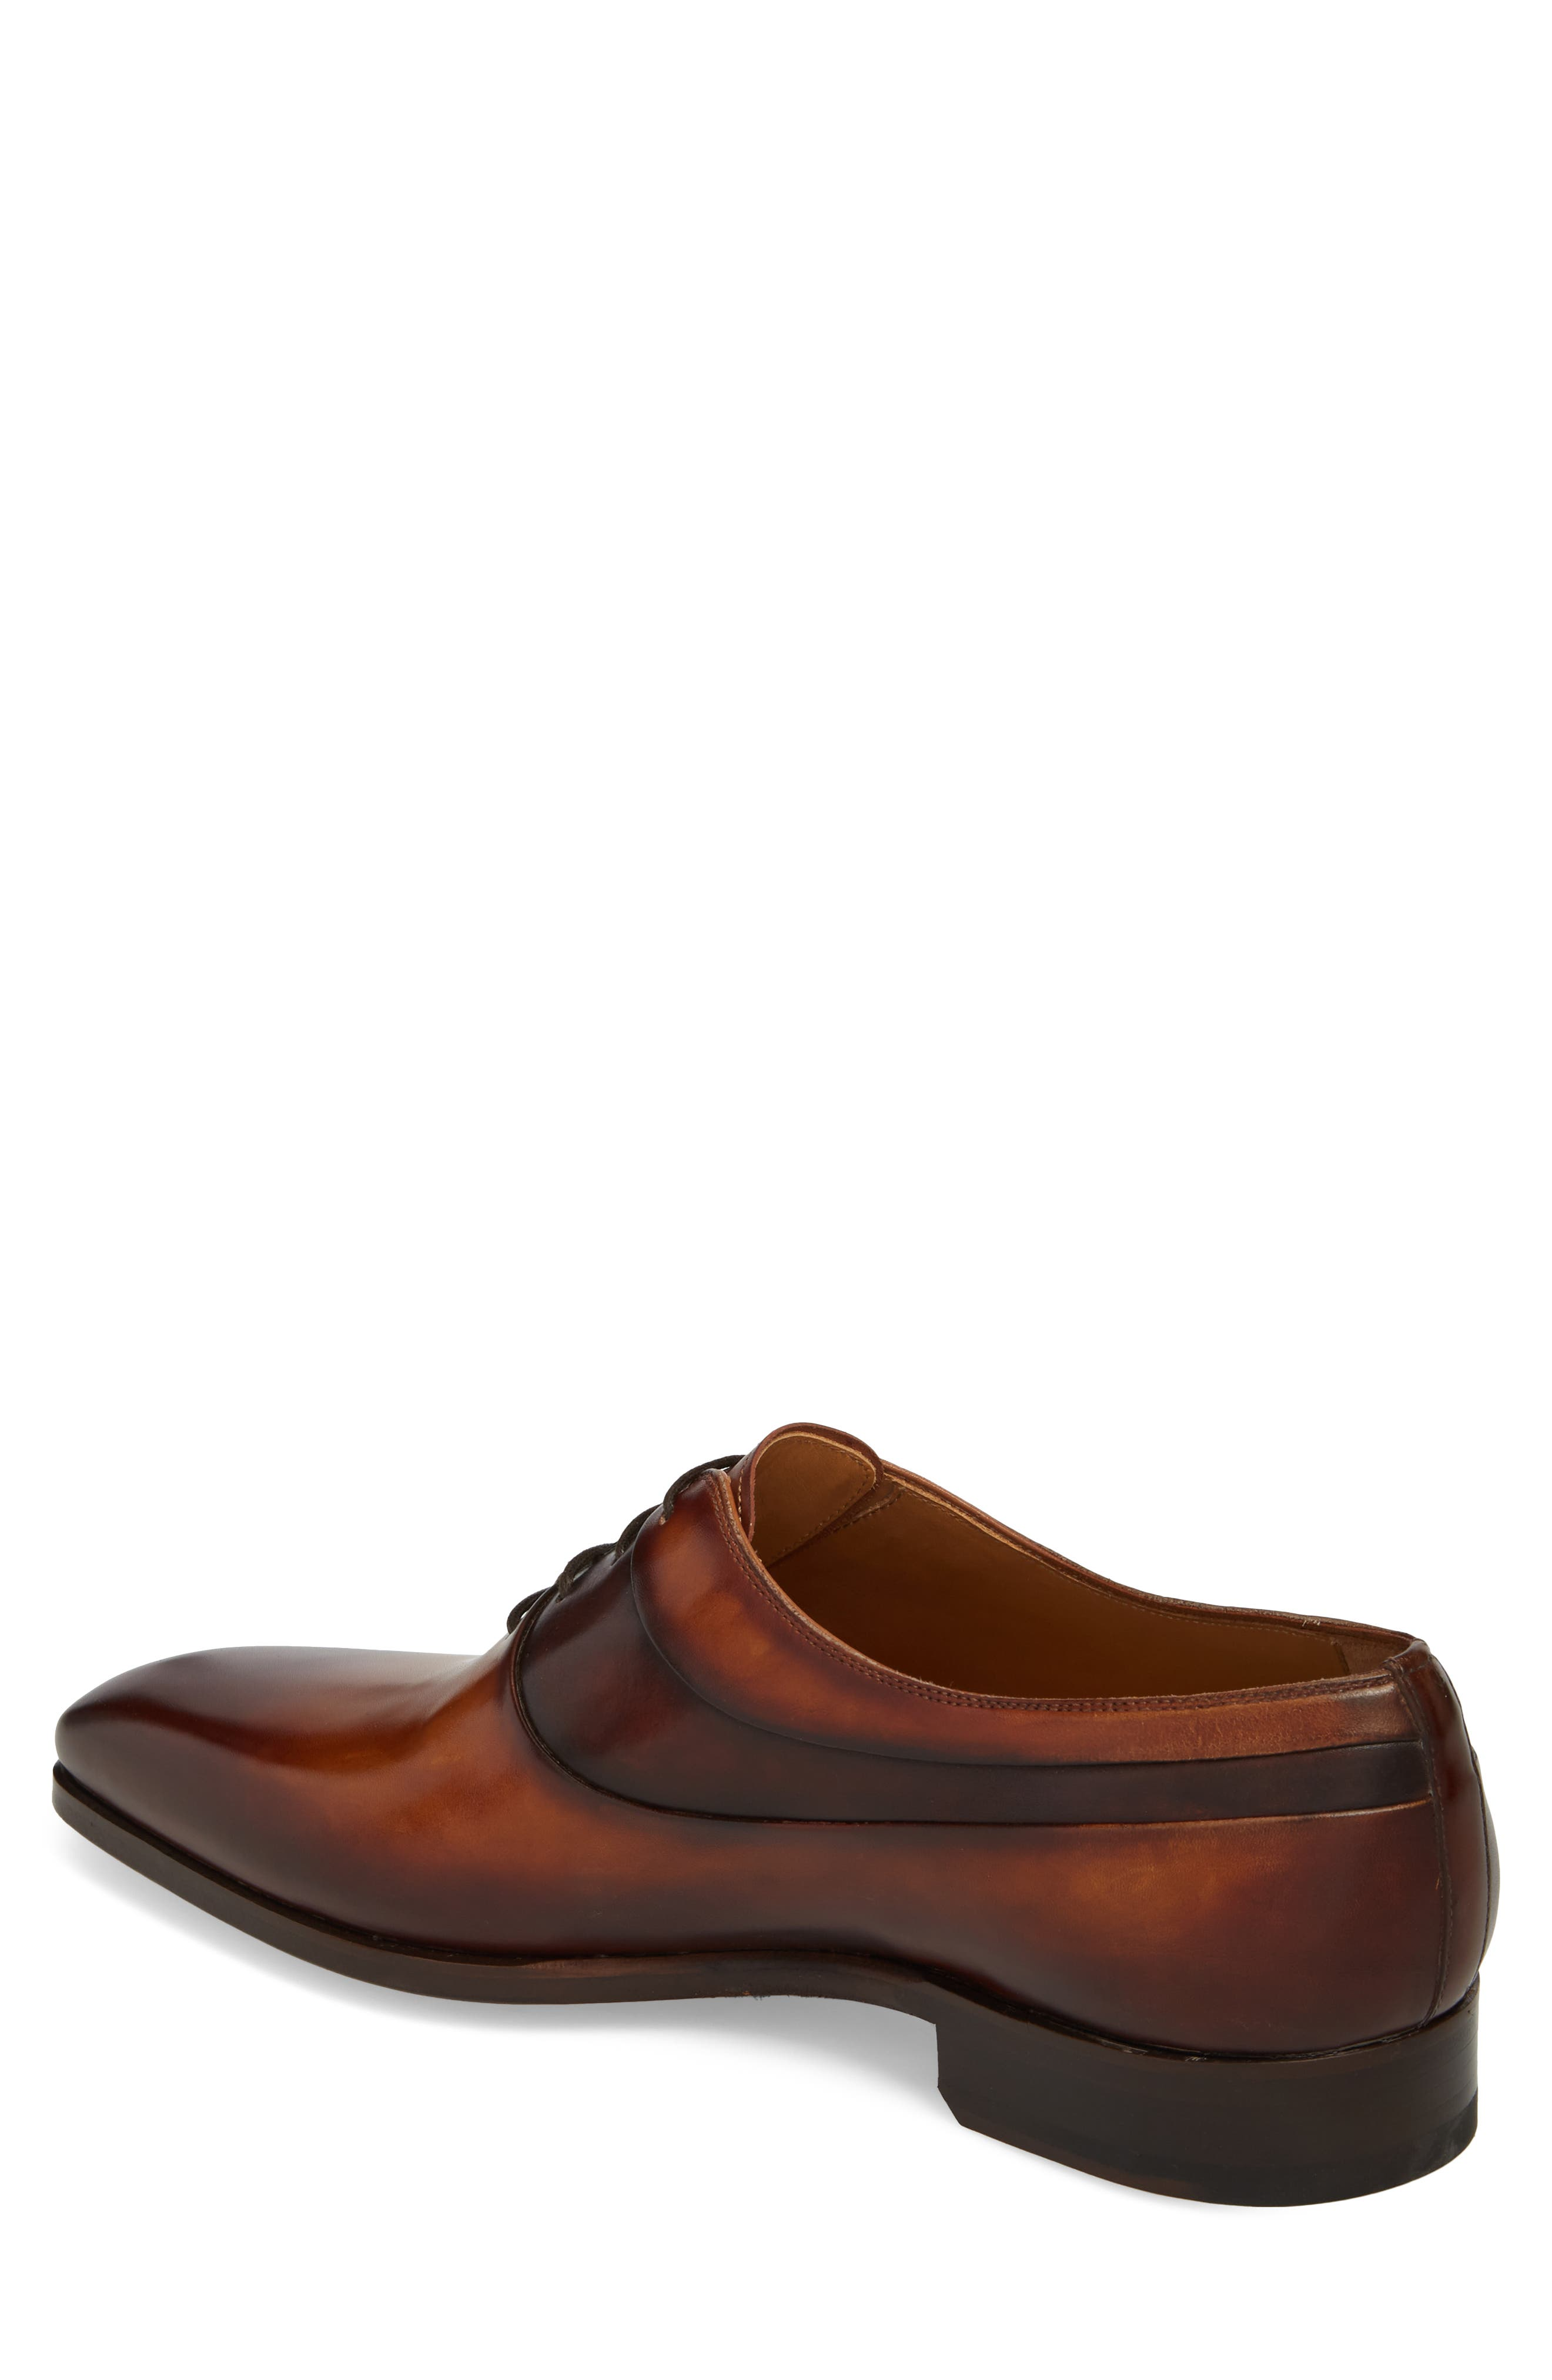 Miles Plain Toe Oxford,                             Alternate thumbnail 2, color,                             BROWN LEATHER